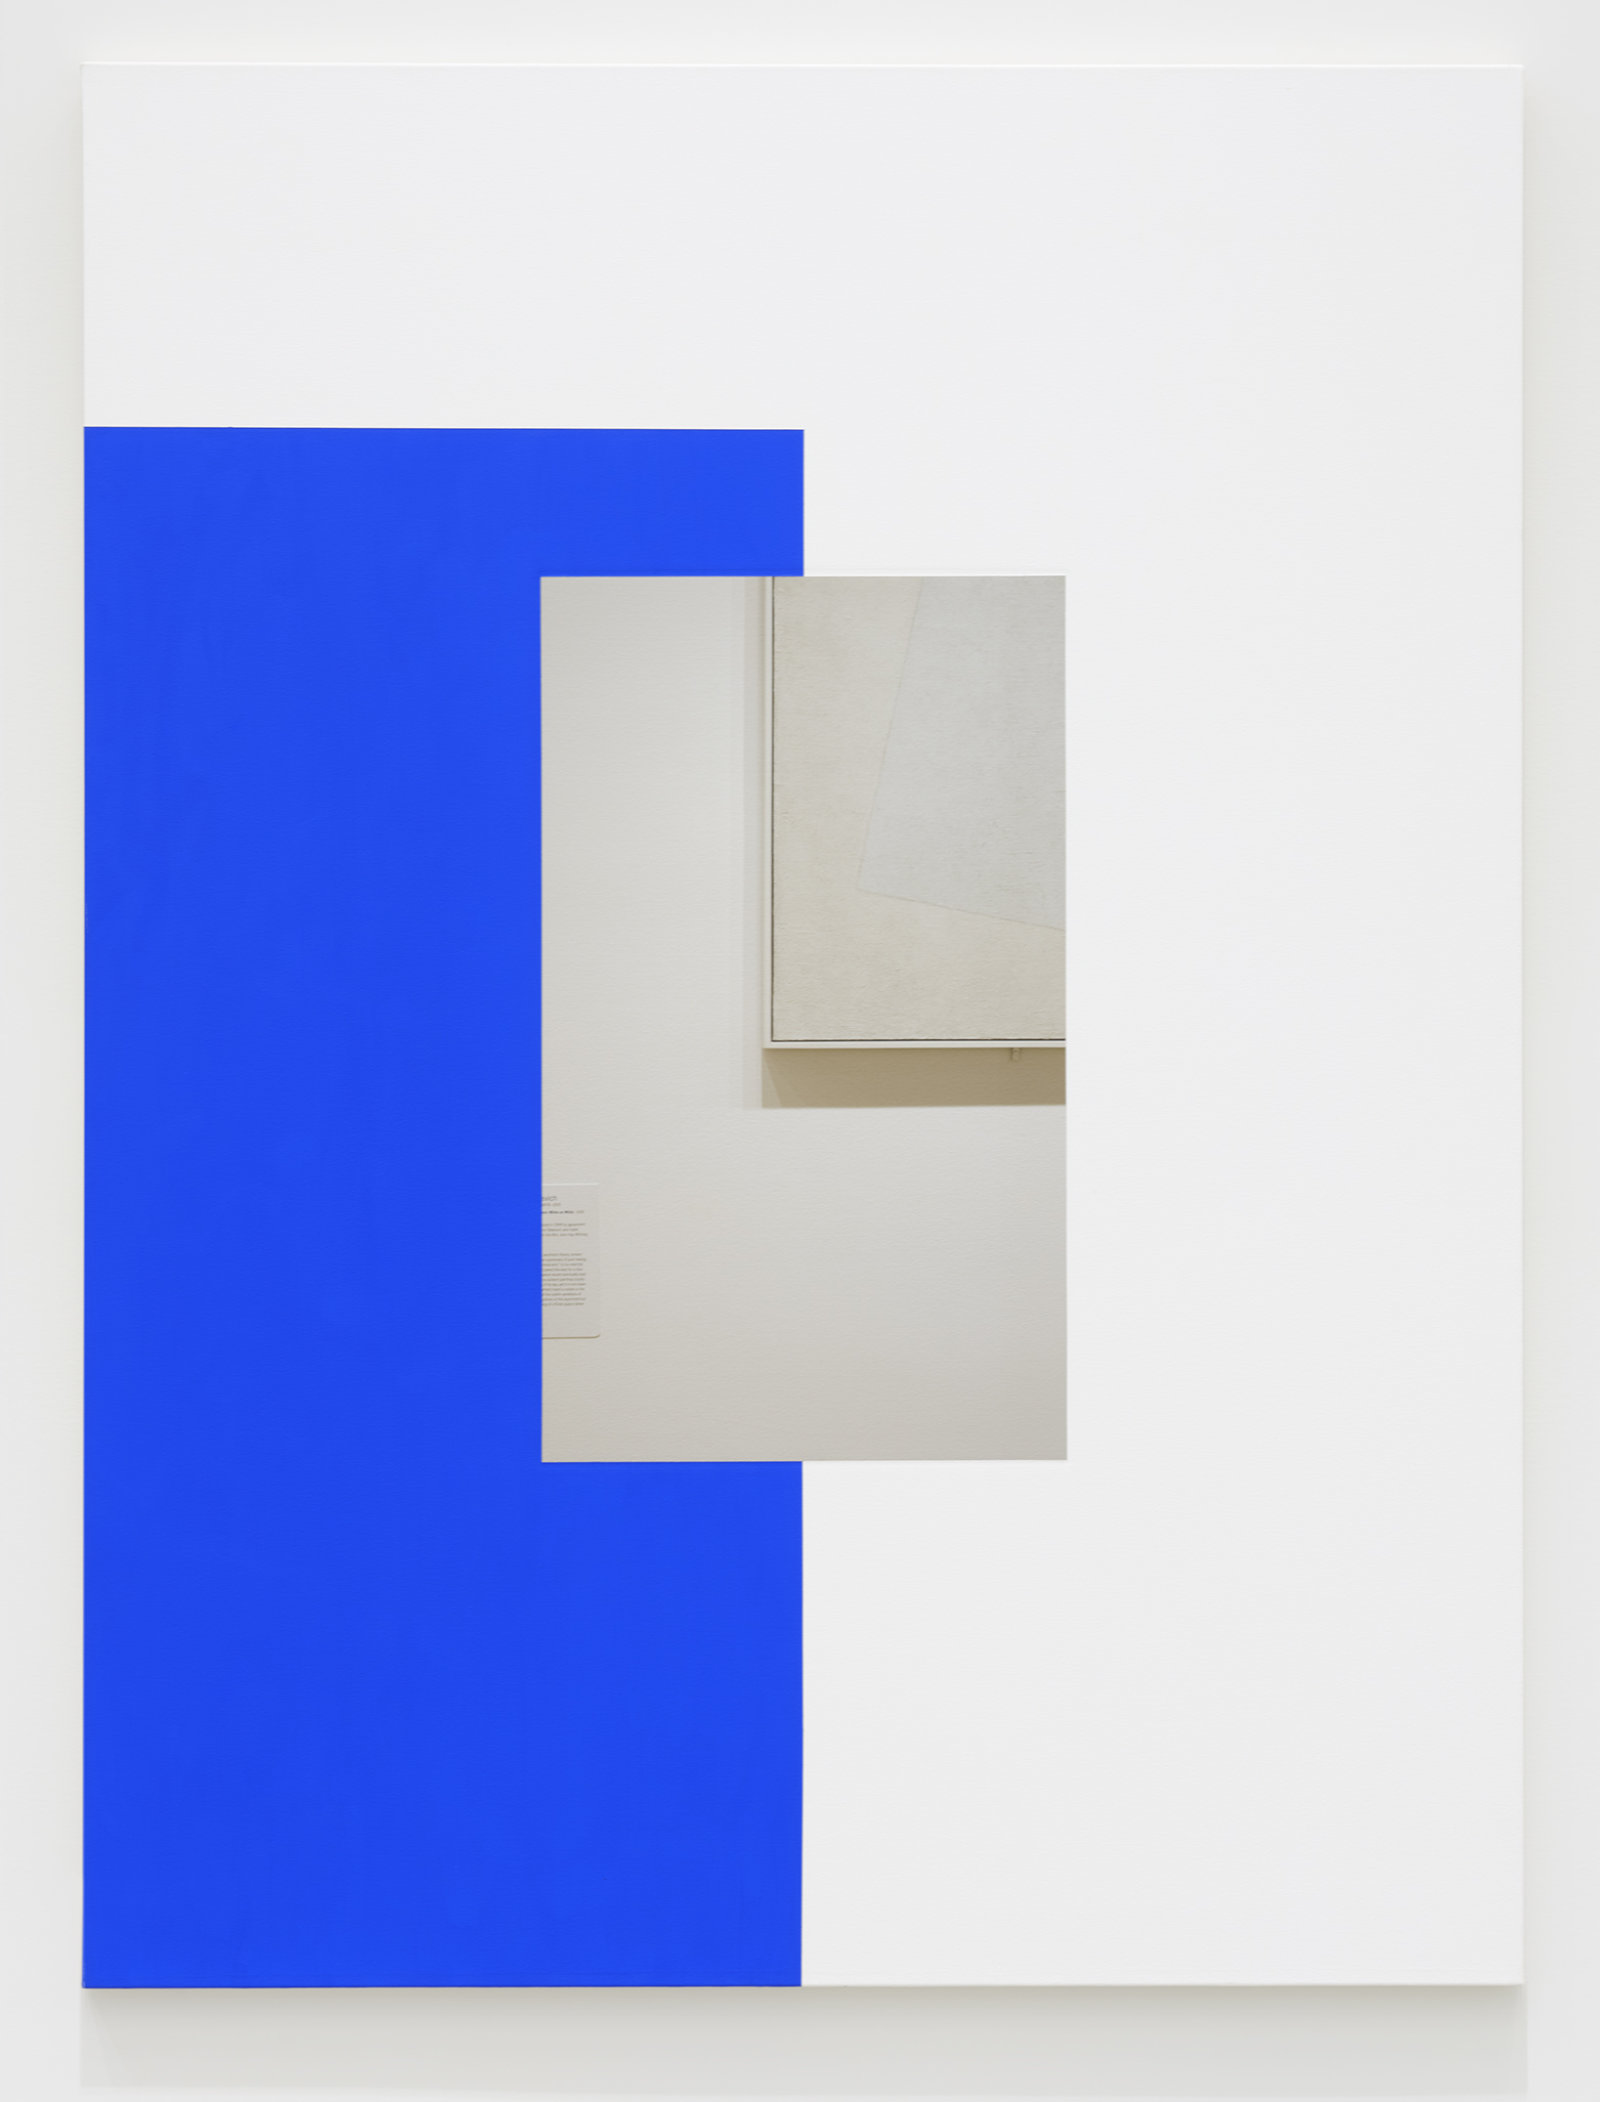 Ian Wallace, Abstract Painting (Blue on White), 2011, photolaminate and acrylic on canvas, 80 x 60 in. (203 x 152 cm) by Ian Wallace